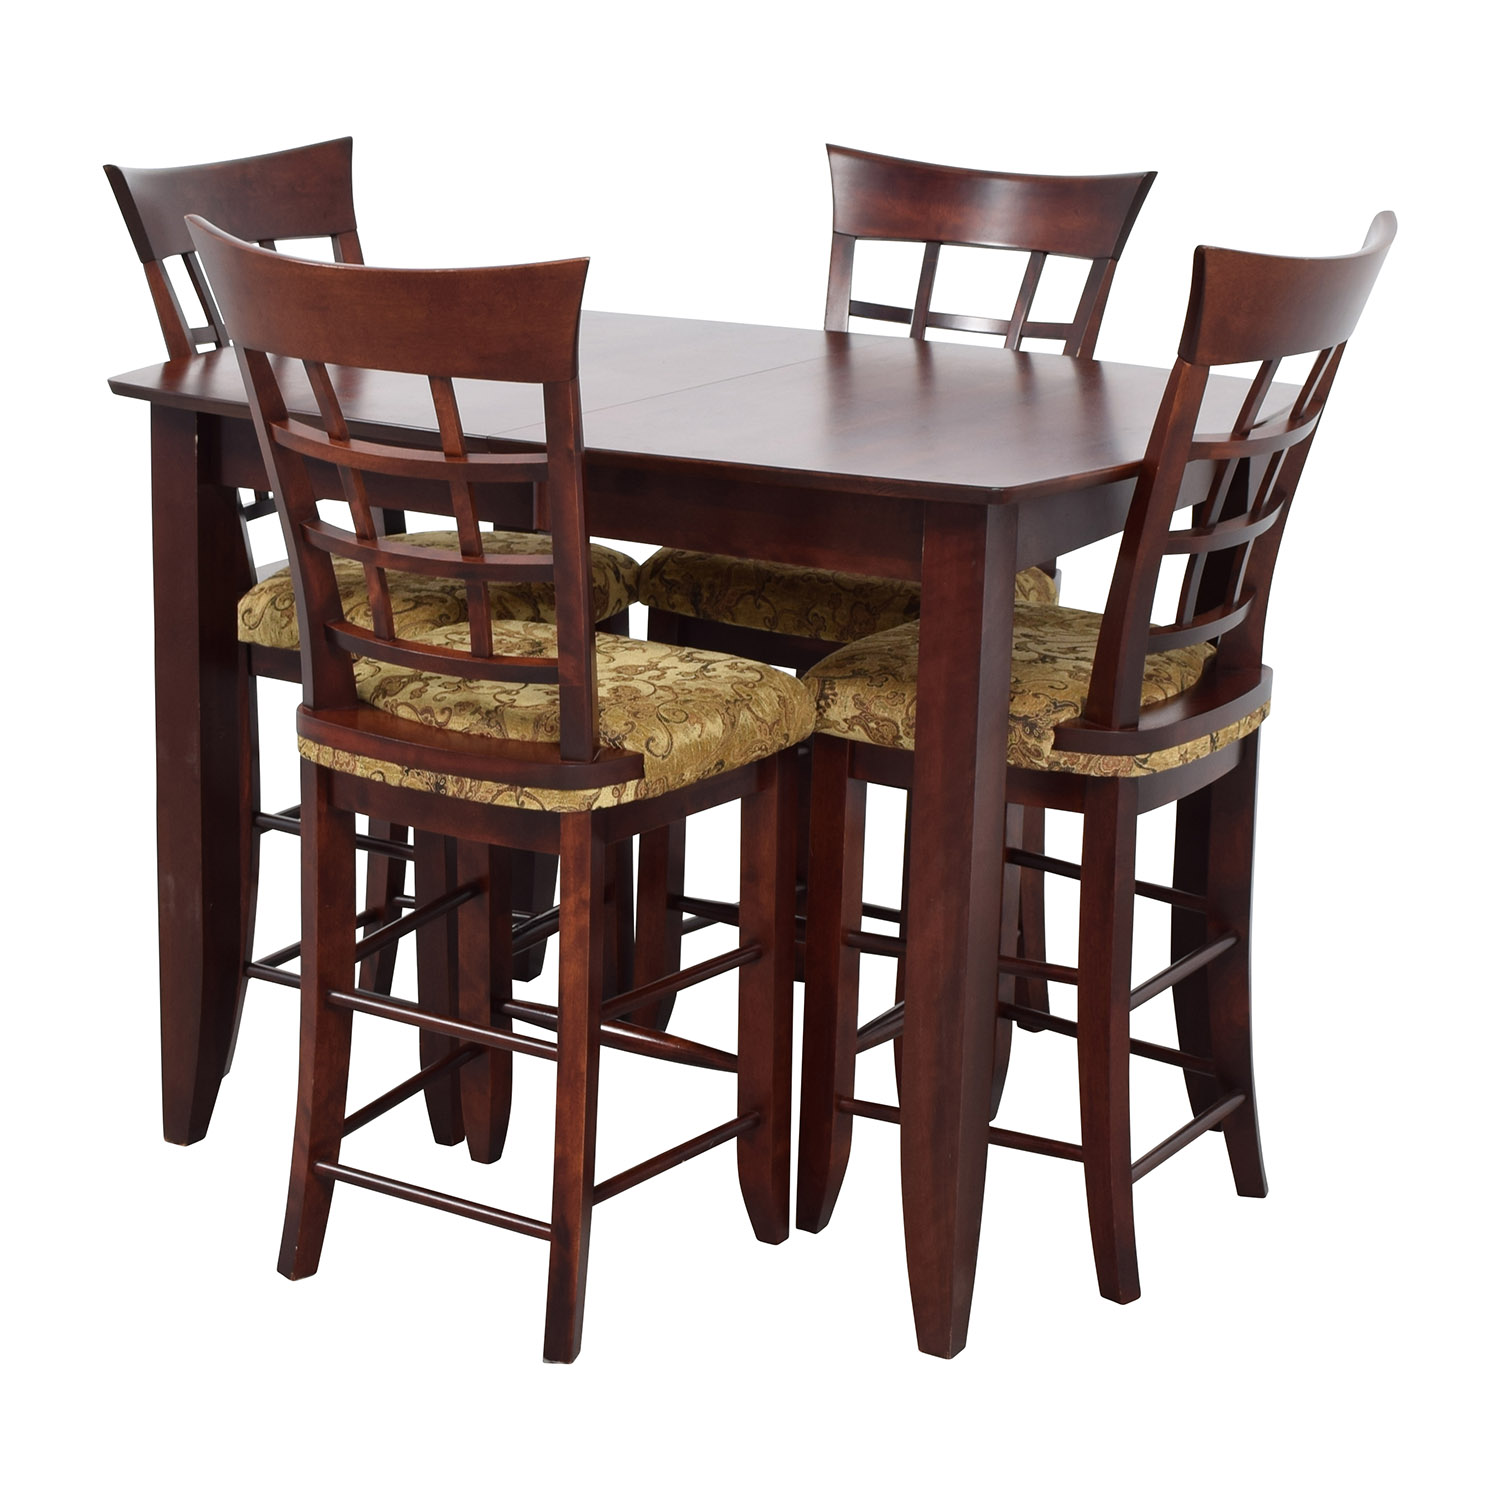 High top dining table sets gallery dining table ideas for High chair dining table set